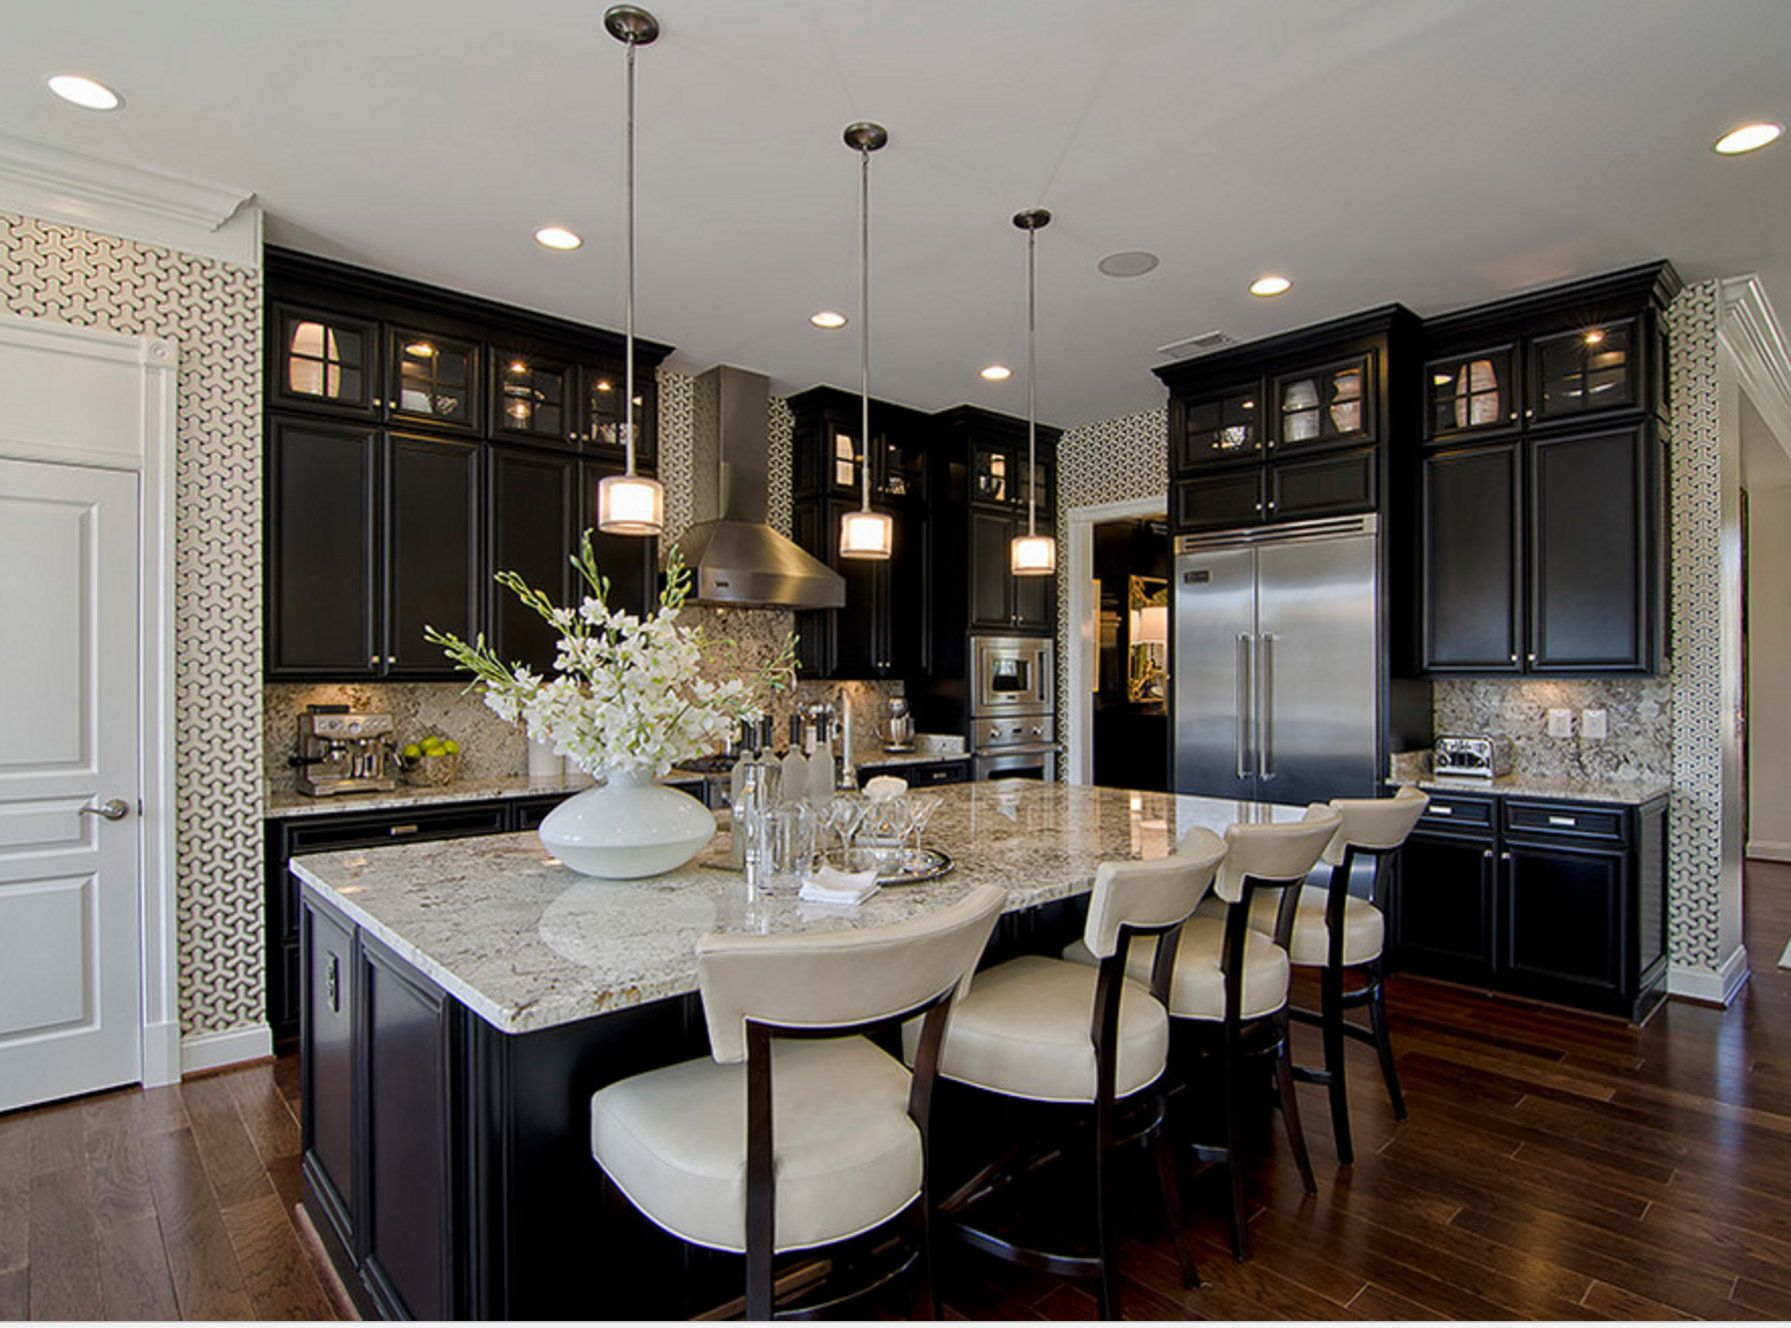 Kitchens With Black Cabinets Entrancing Black Ebony Stained Kitchen Cabinets Paint  Pinterest . Decorating Inspiration